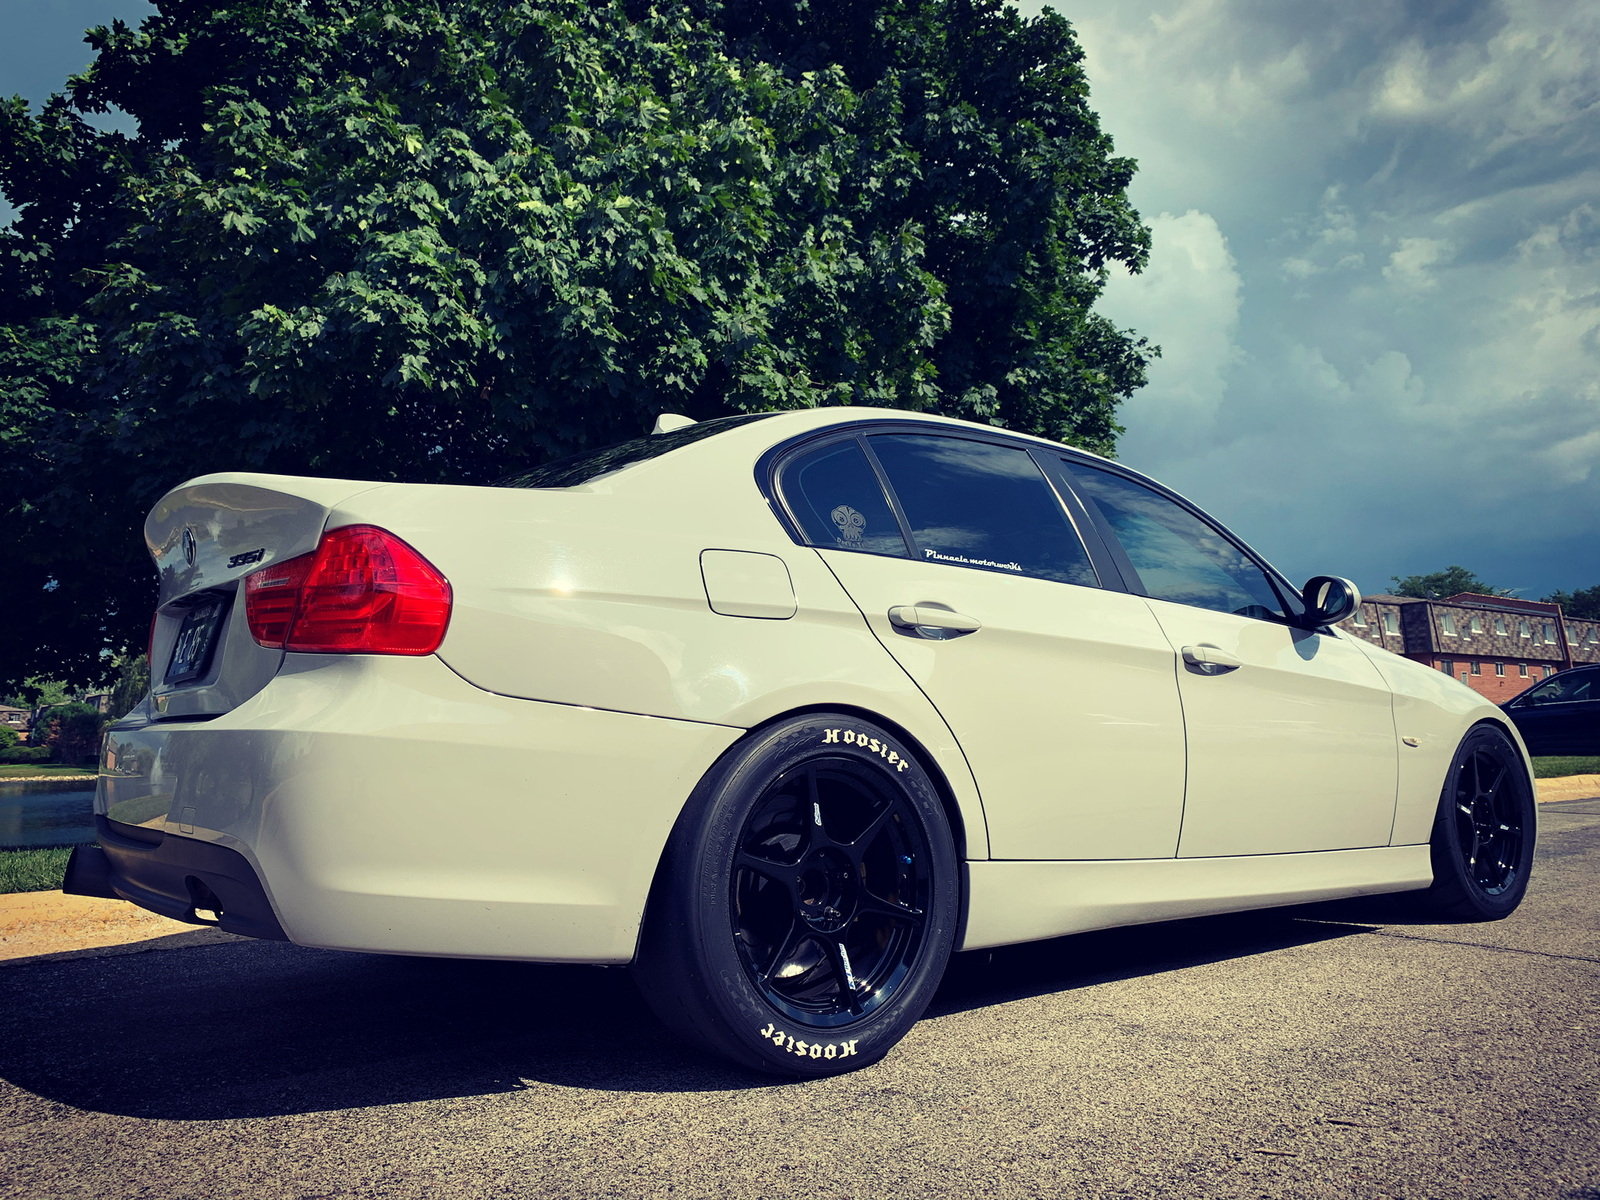 Grey 2007 BMW 335xi